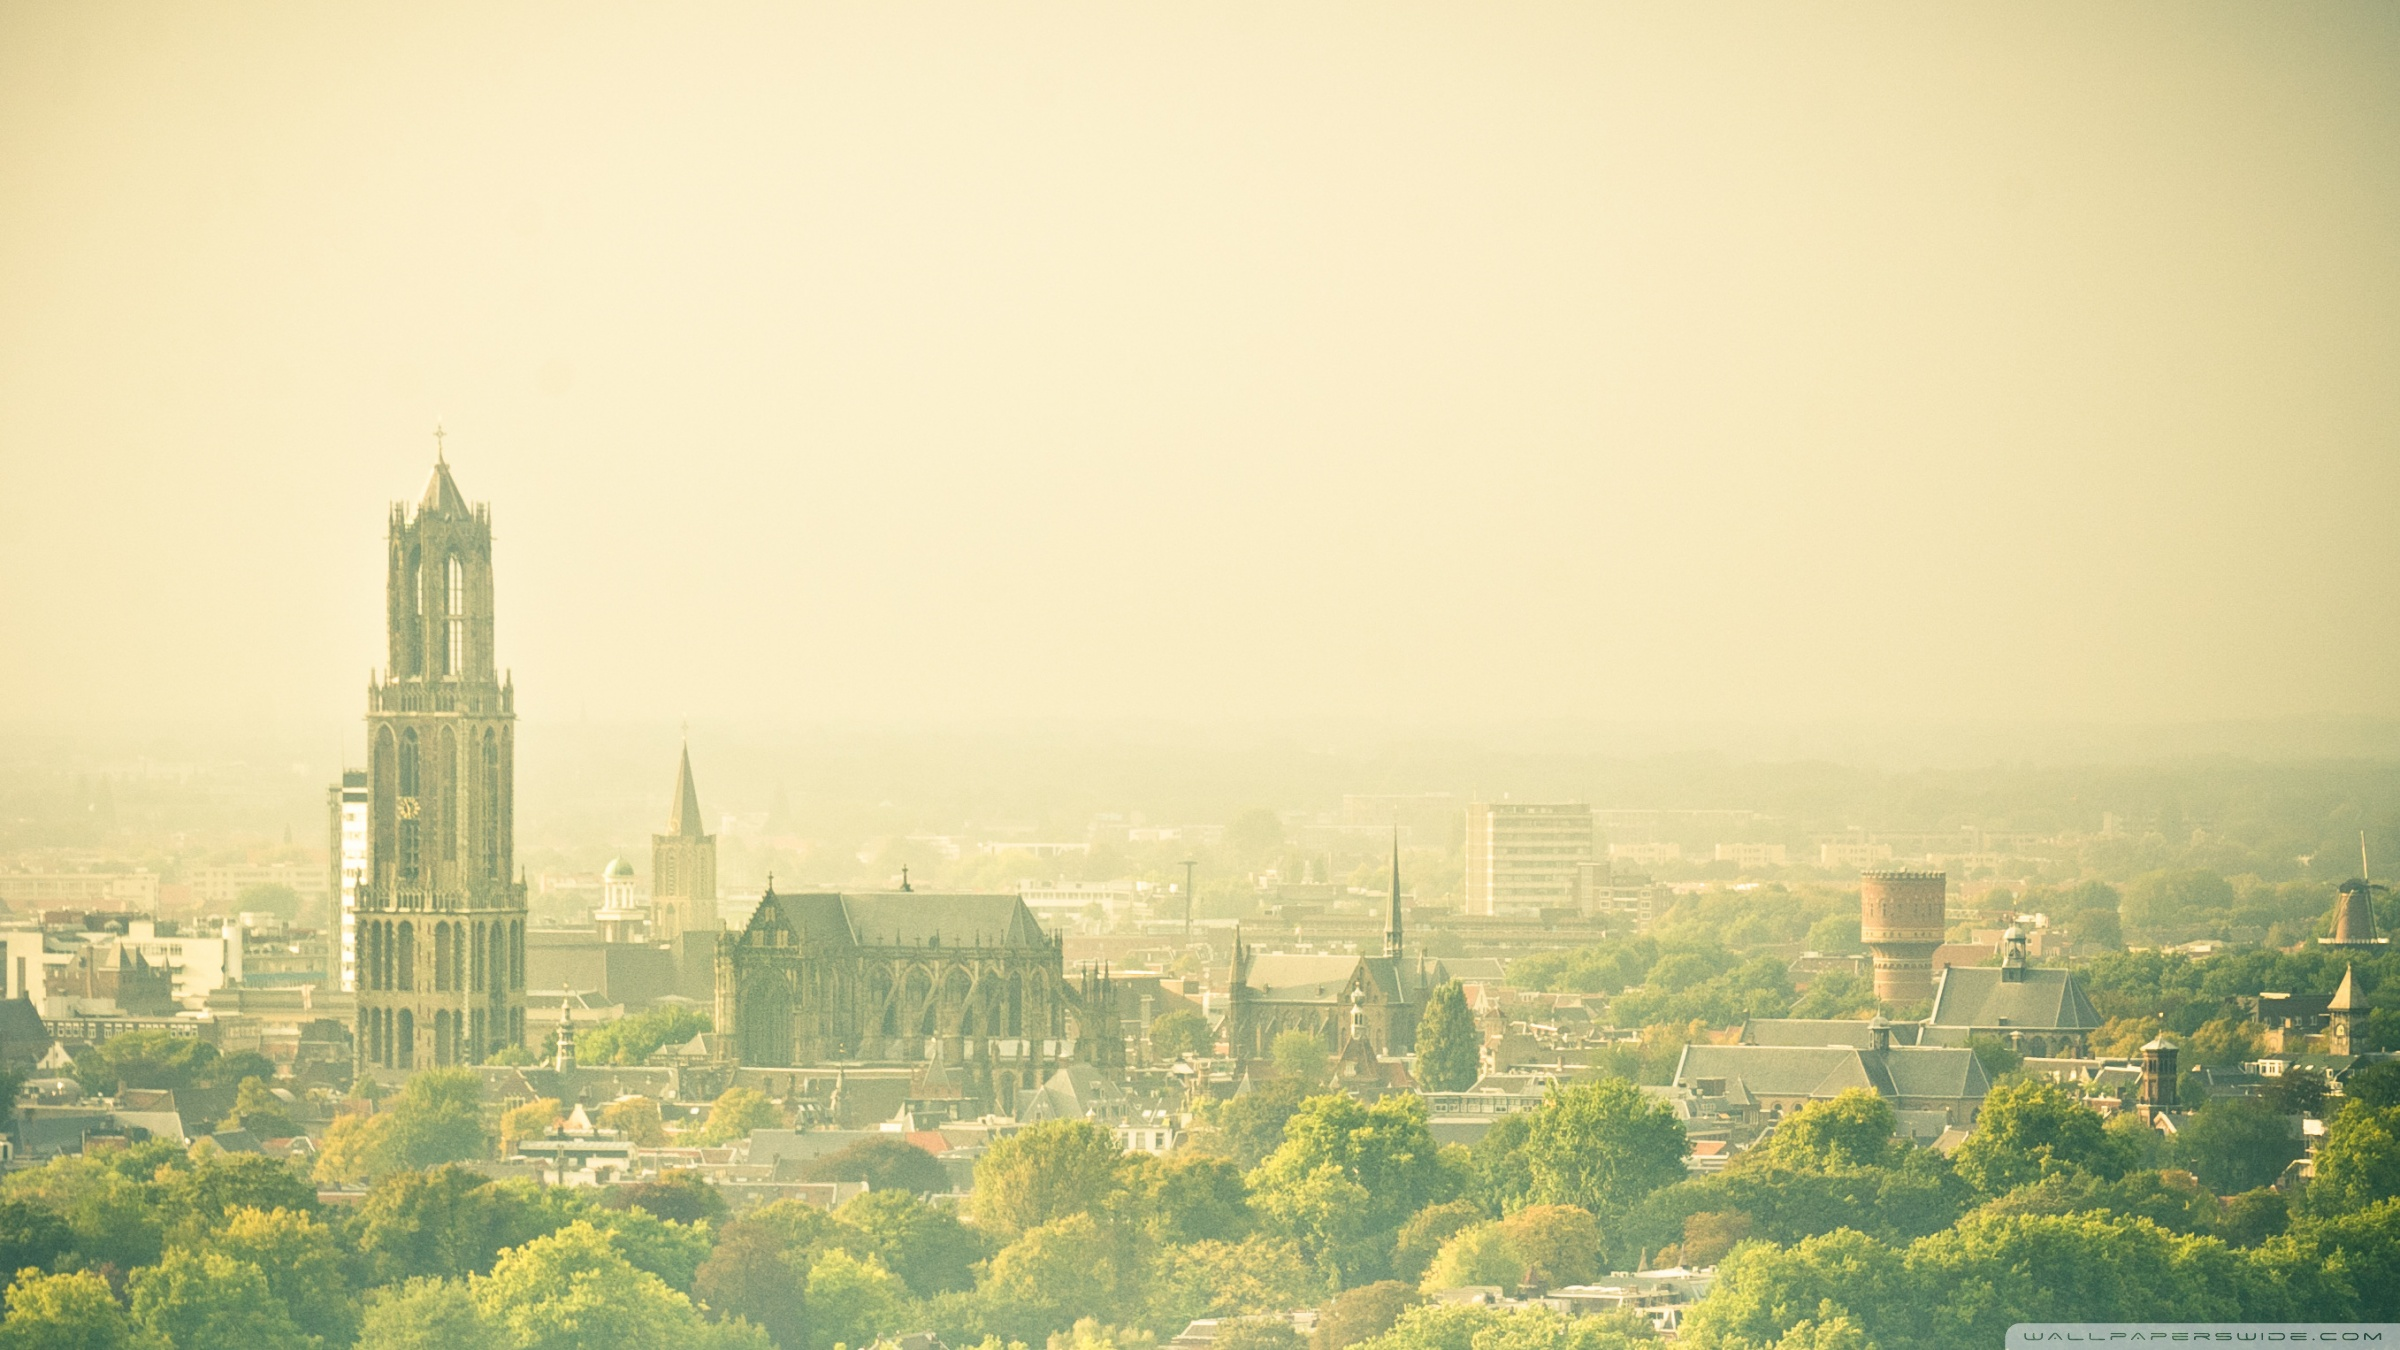 Hazy Utrecht View From The Conclusion Flat 4K HD Desktop 2400x1350